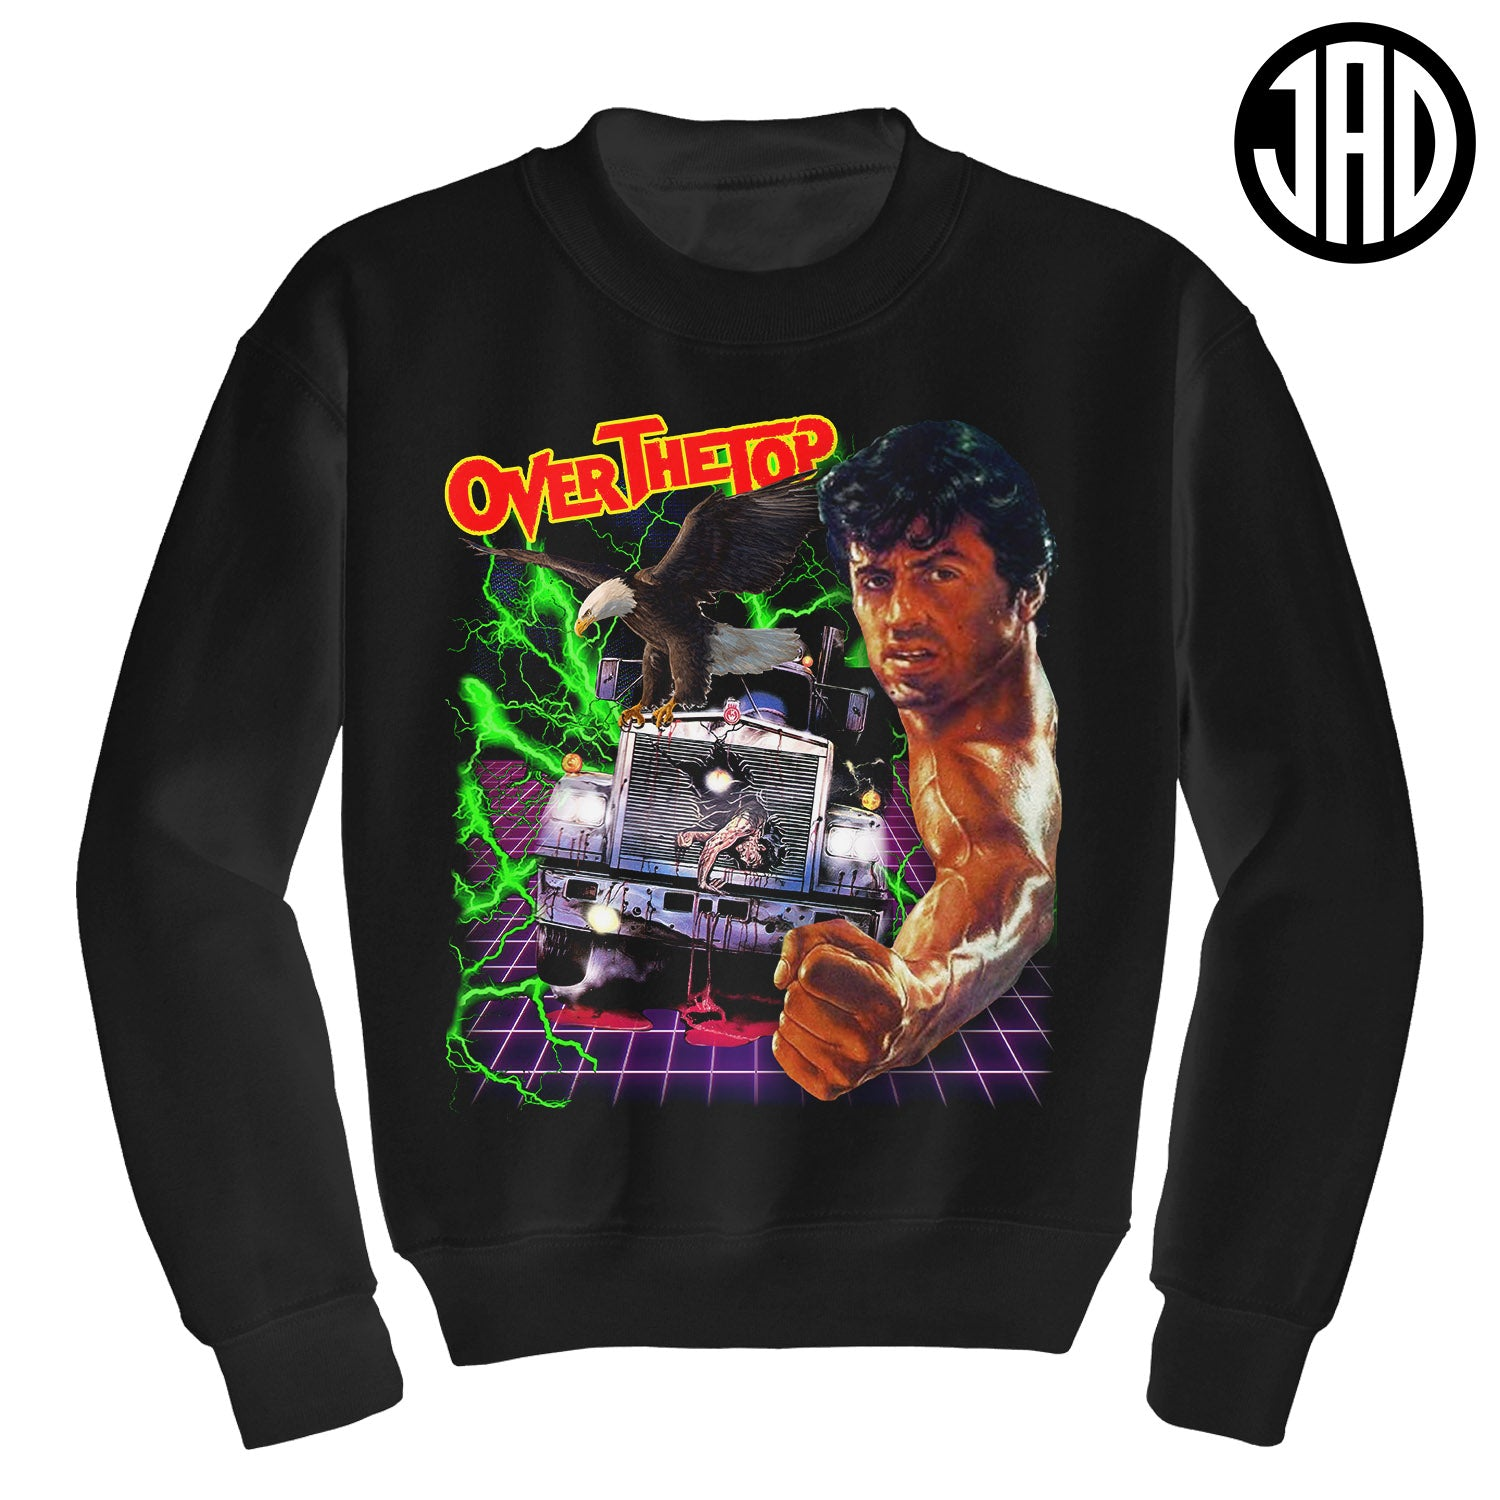 Over The Top - Crewneck Sweater